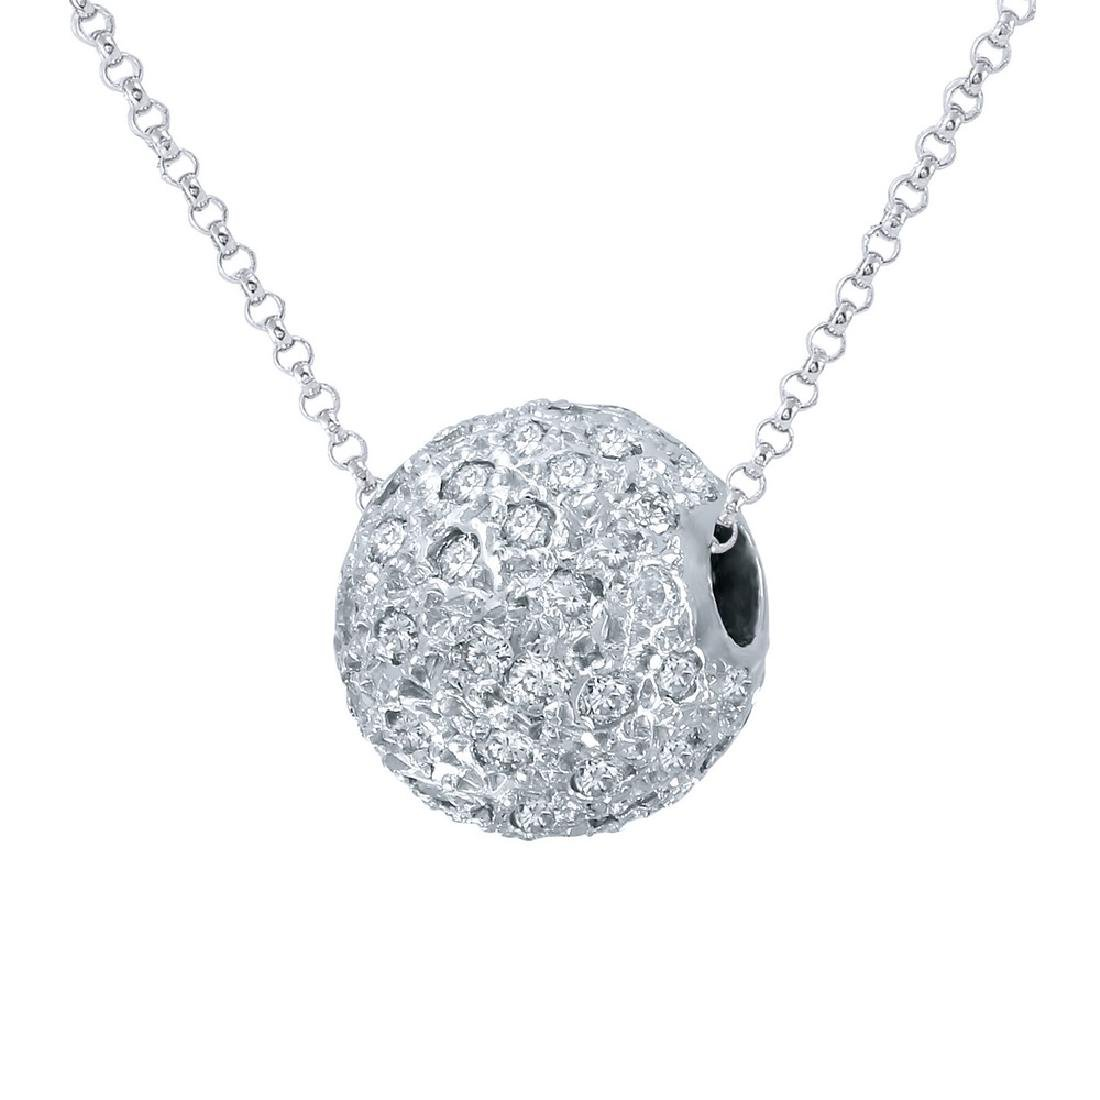 Genuine 1 TCW 14K White Gold Ladies Pendant